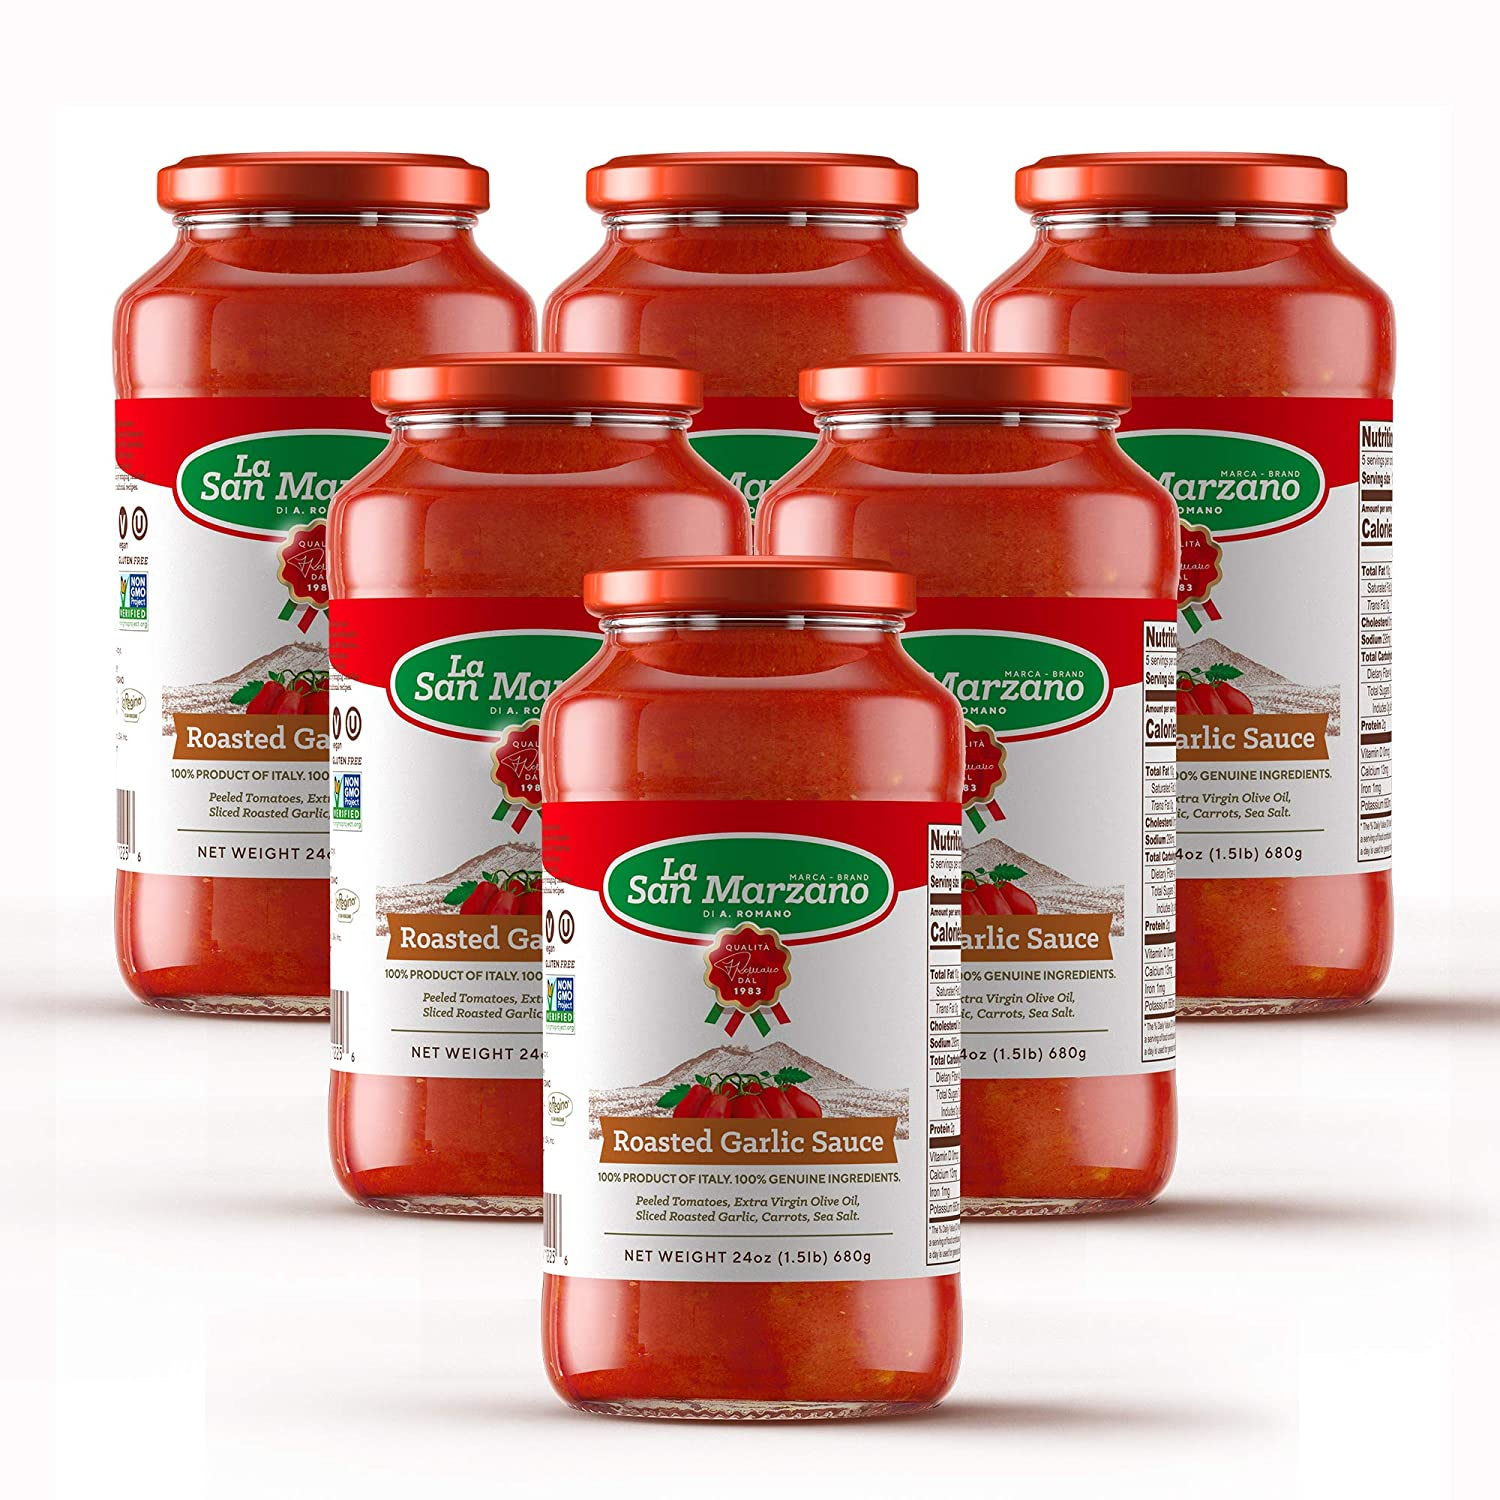 Roasted Garlic Pasta Sauce La San Marzano 100% Product of Italy 24 Ounce Jars - 100% Genuine Ingredients With San Marzano Tomatoes DOP Quality (Pack of 6)